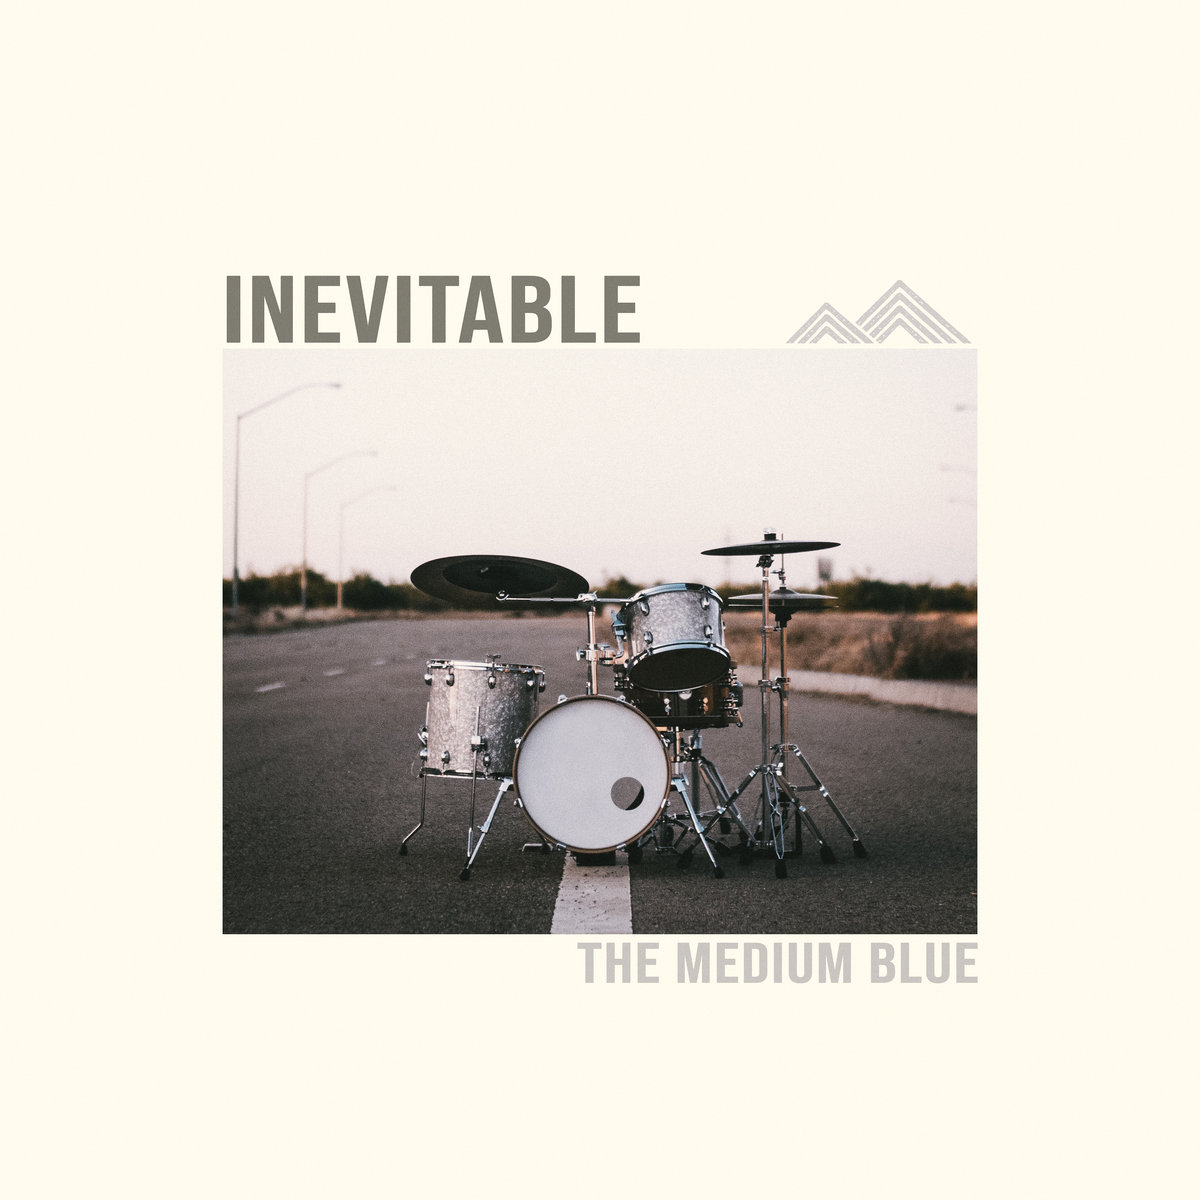 Inevitable [Single] by THE MEDIUM BLUE